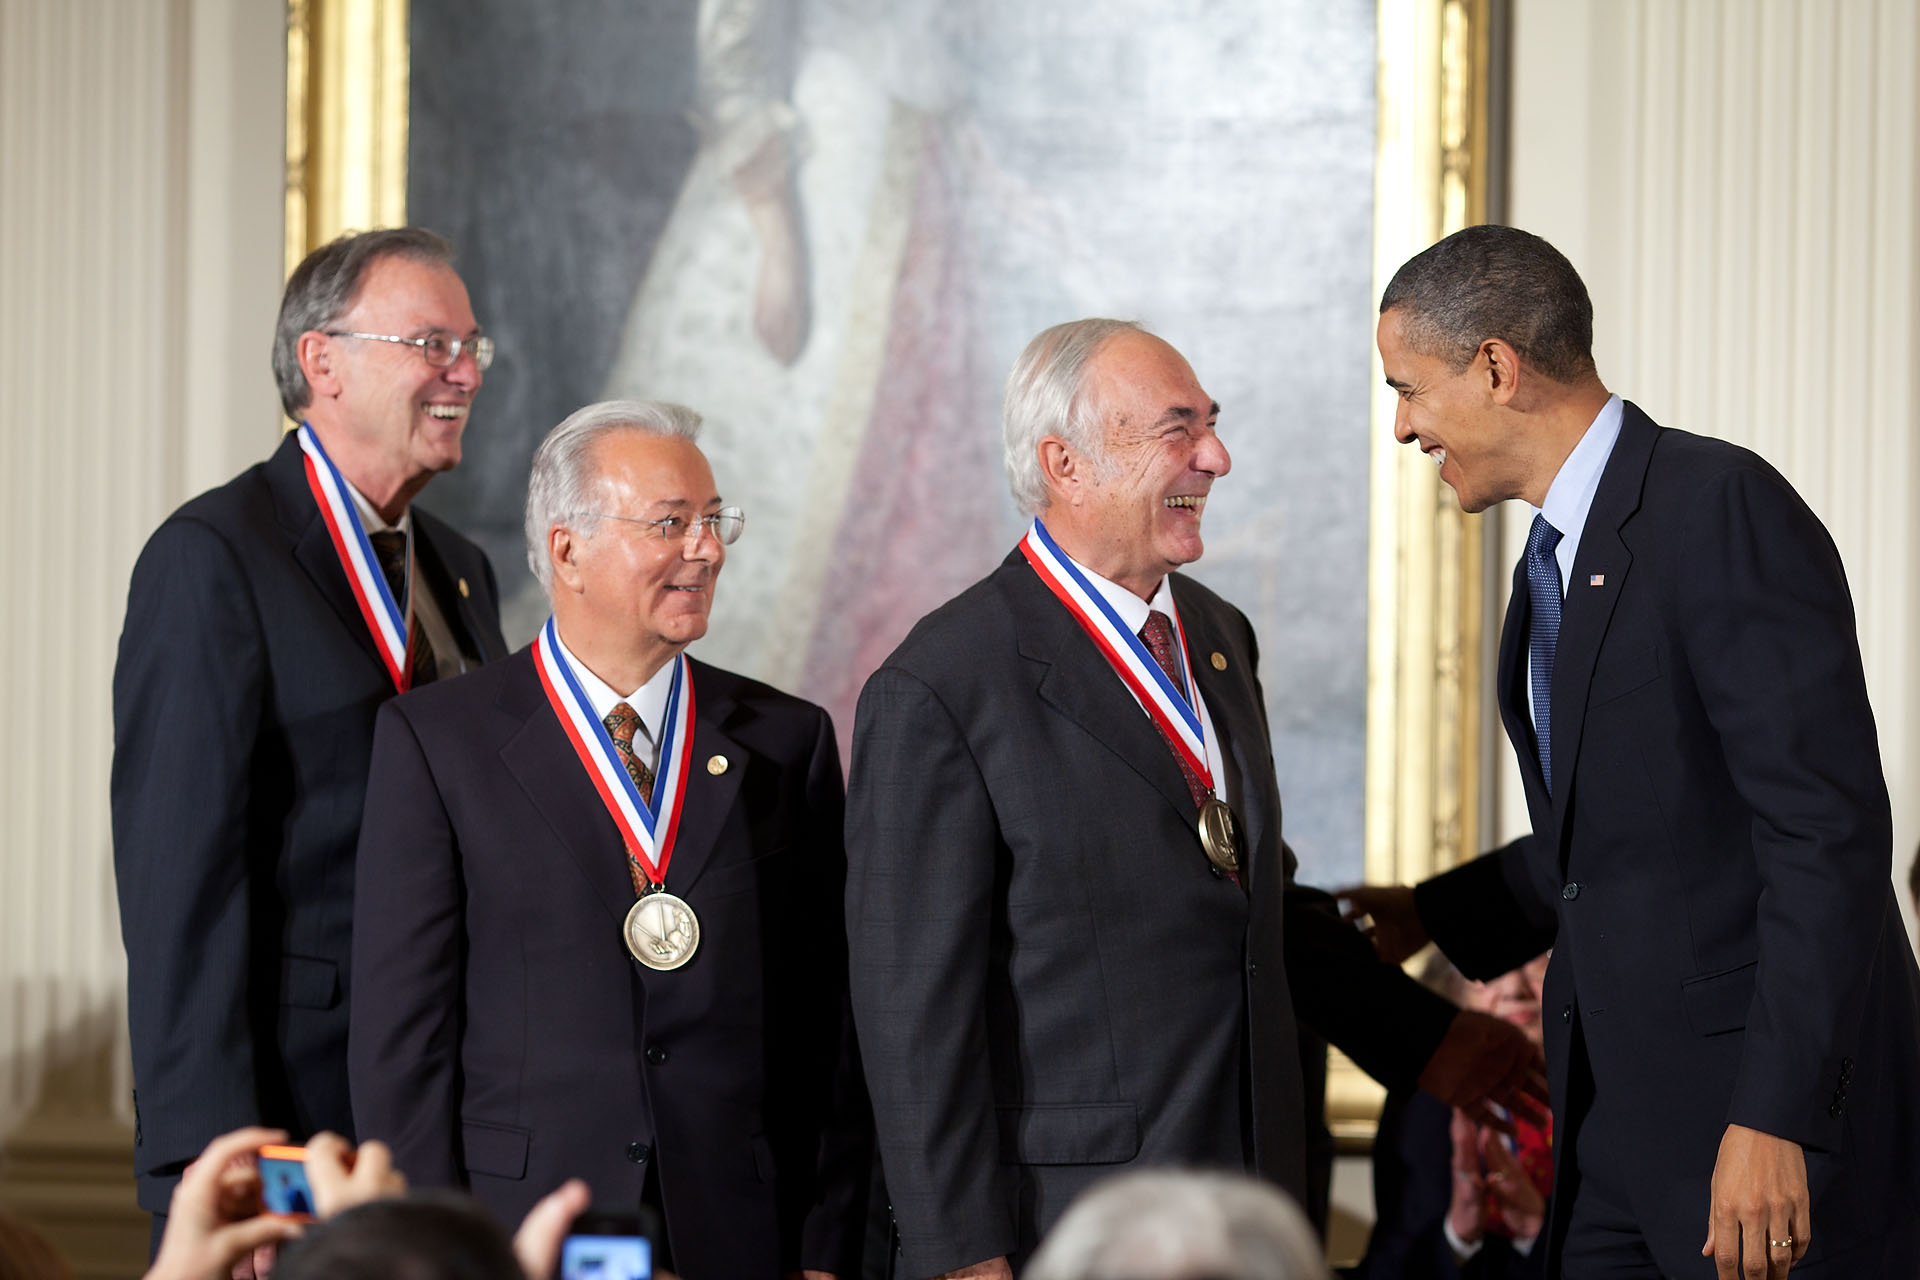 National Medals of Science, Technology and Innovation 2